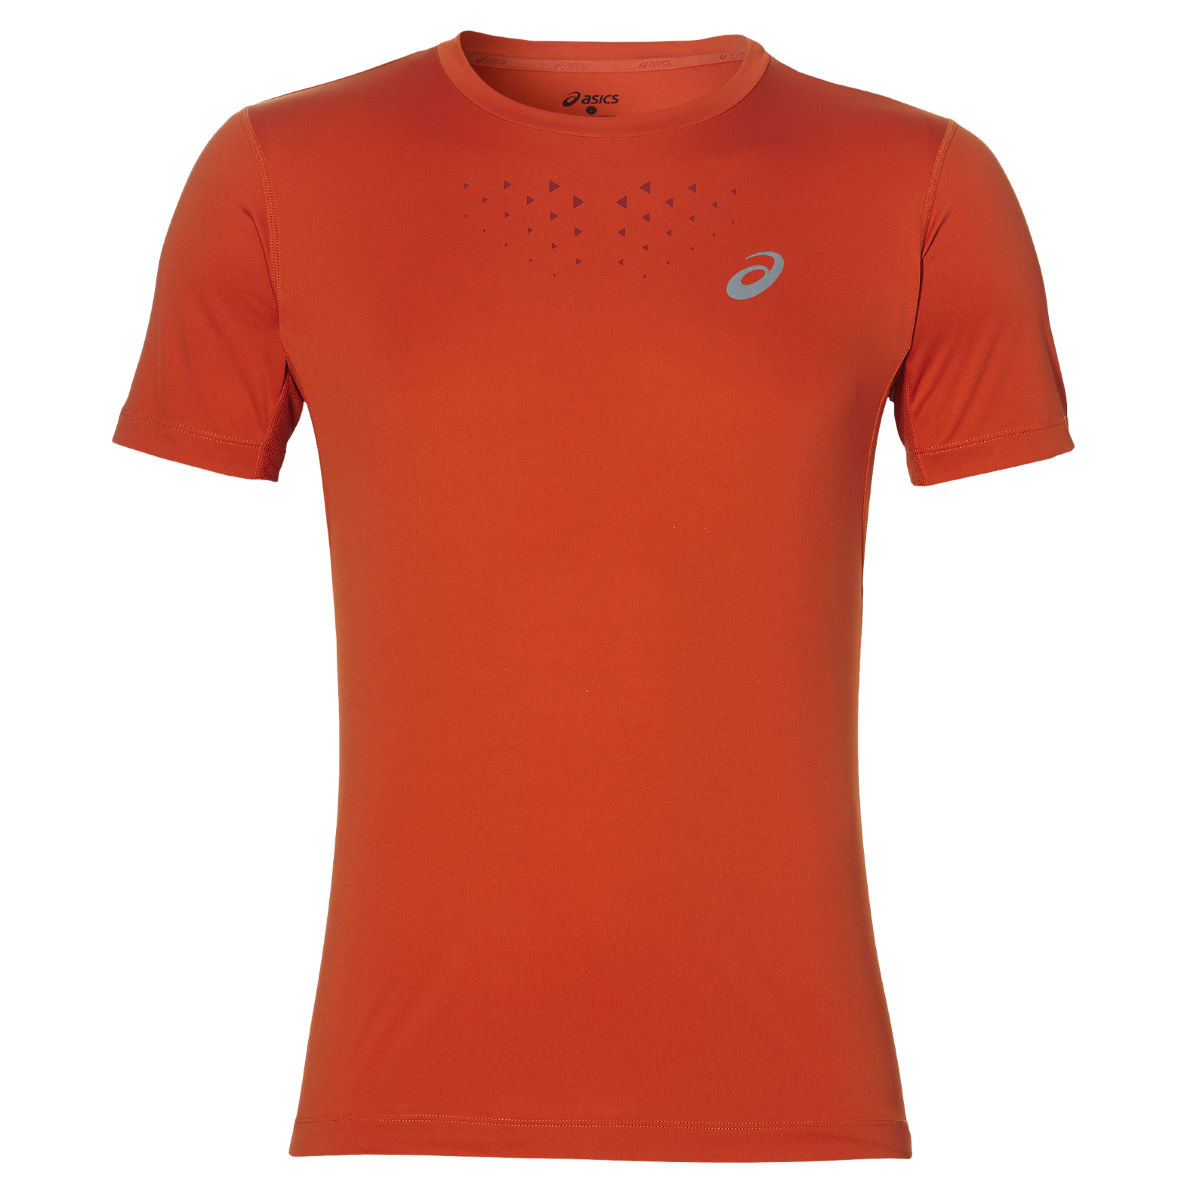 Maillot Asics Stride (manches courtes) - Medium 0516 Red Clay heathe